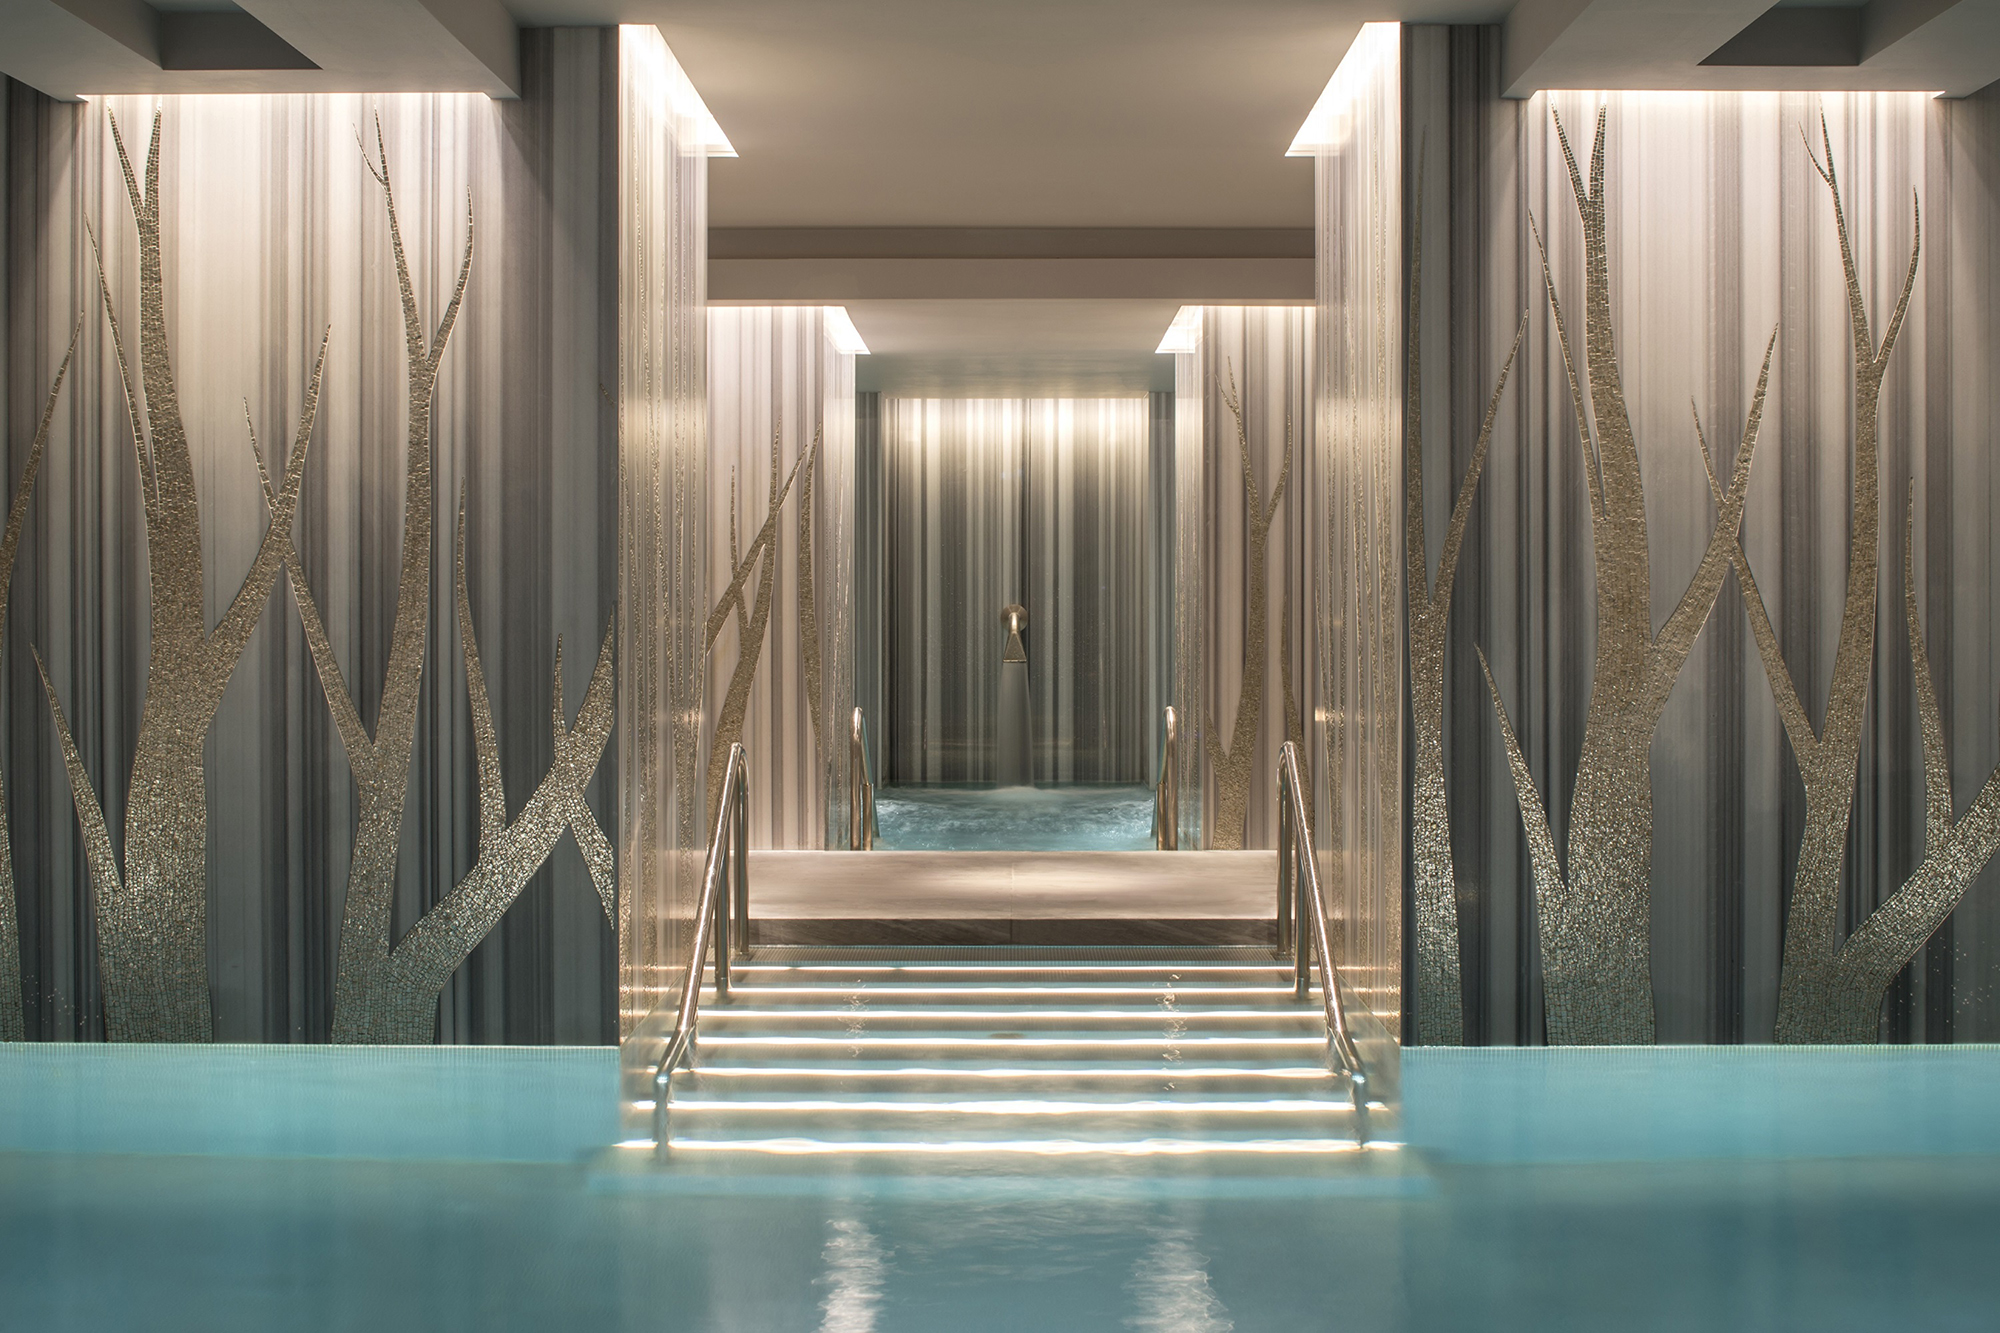 The swimming pool at Four Seasons Ten Trinity Square